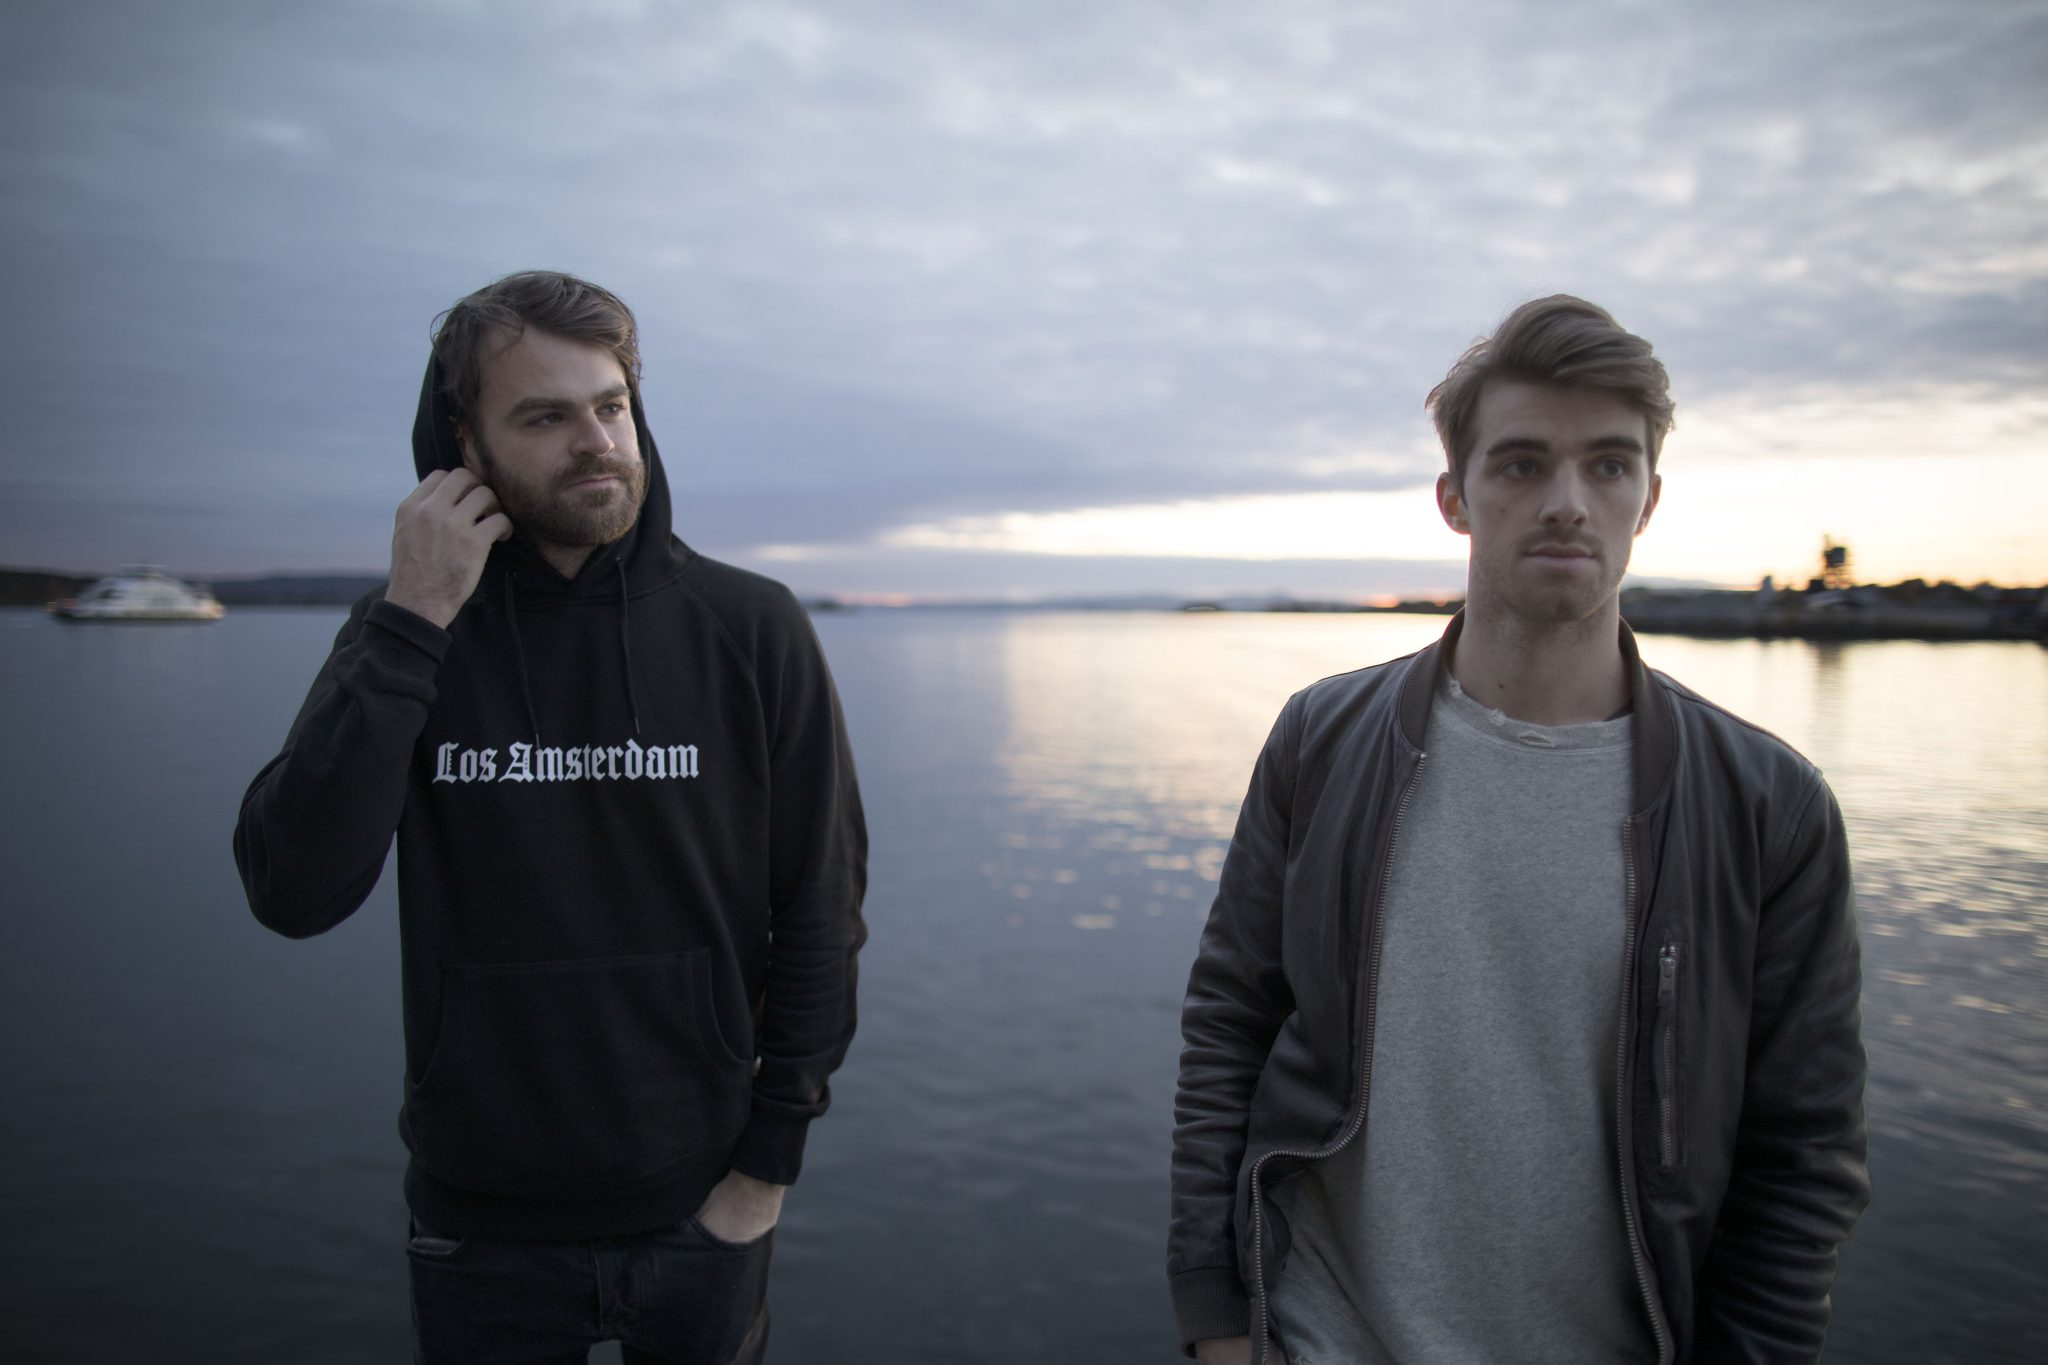 Berkolaborasi Bersama NGHTMARE, The Chainsmokers Rilis Banger 'Save Yourself'